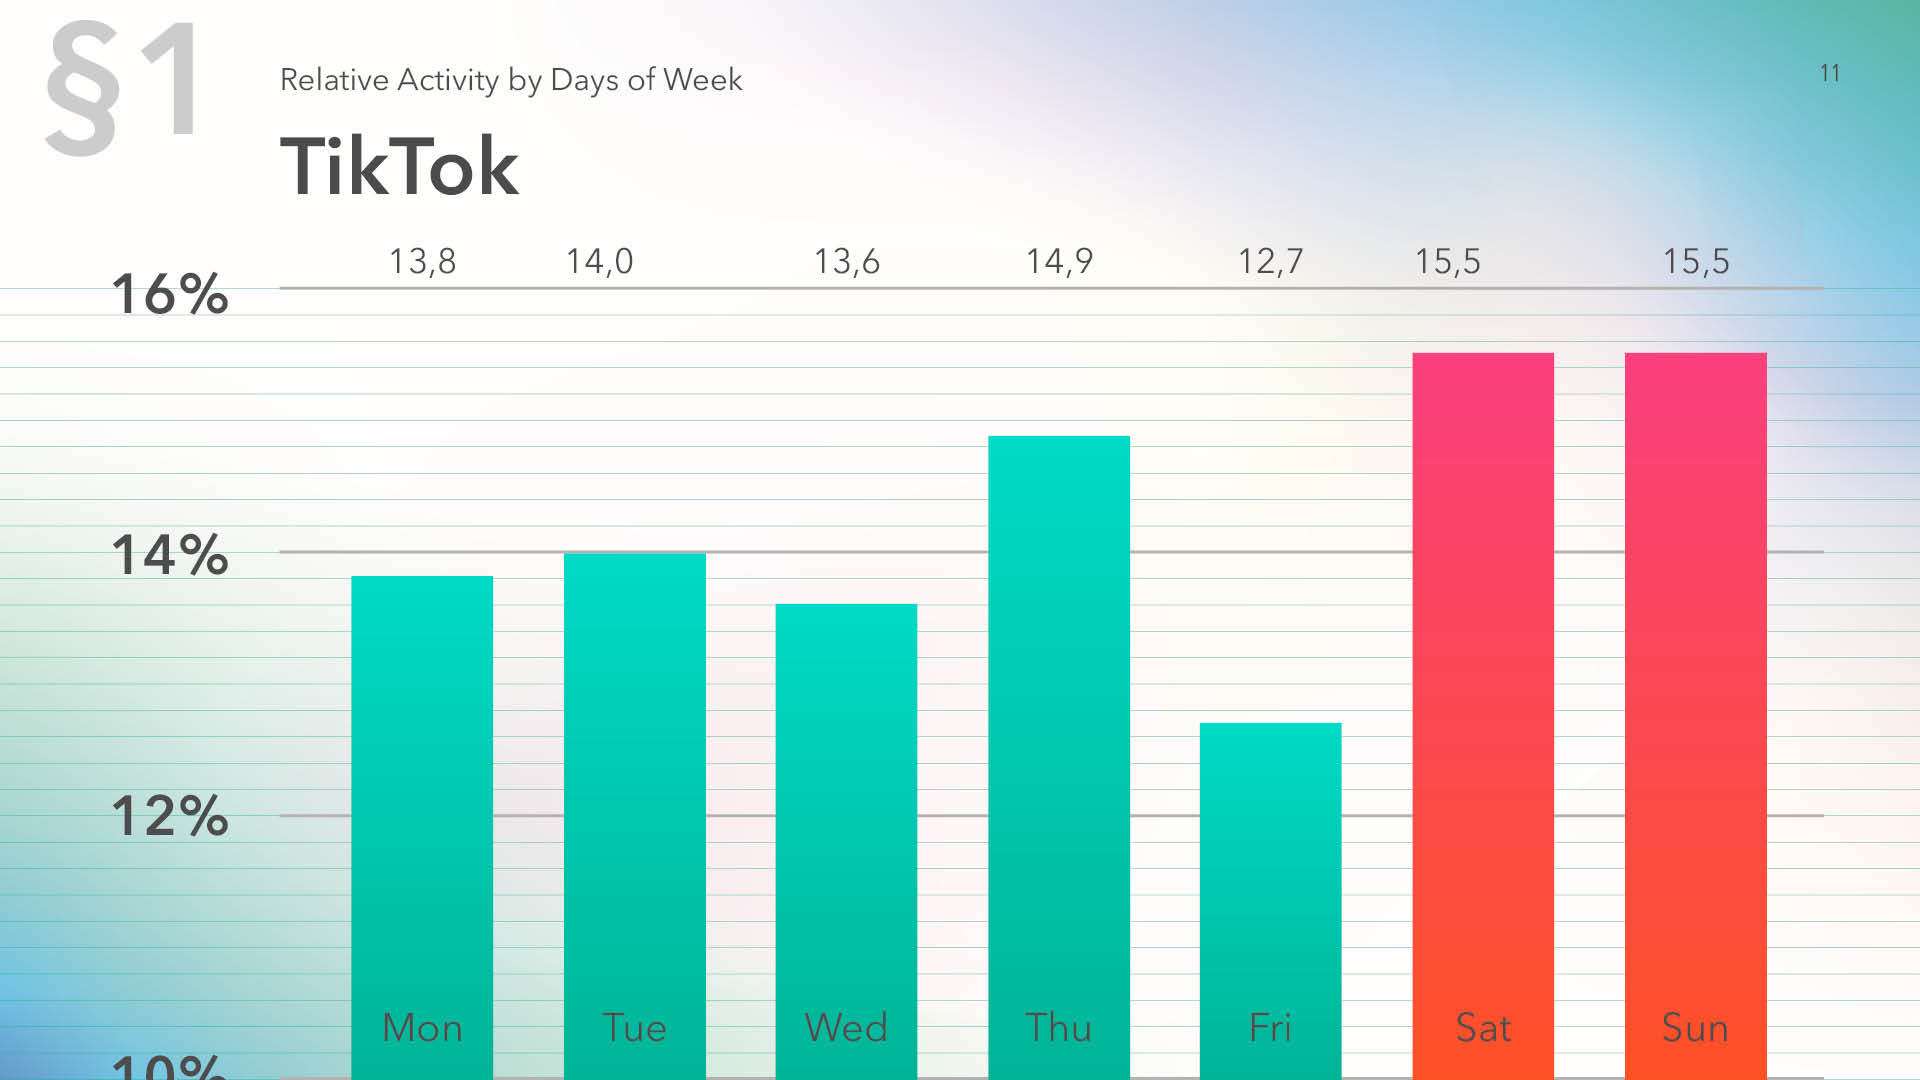 TikTok relative activity by days of week, data for 2019